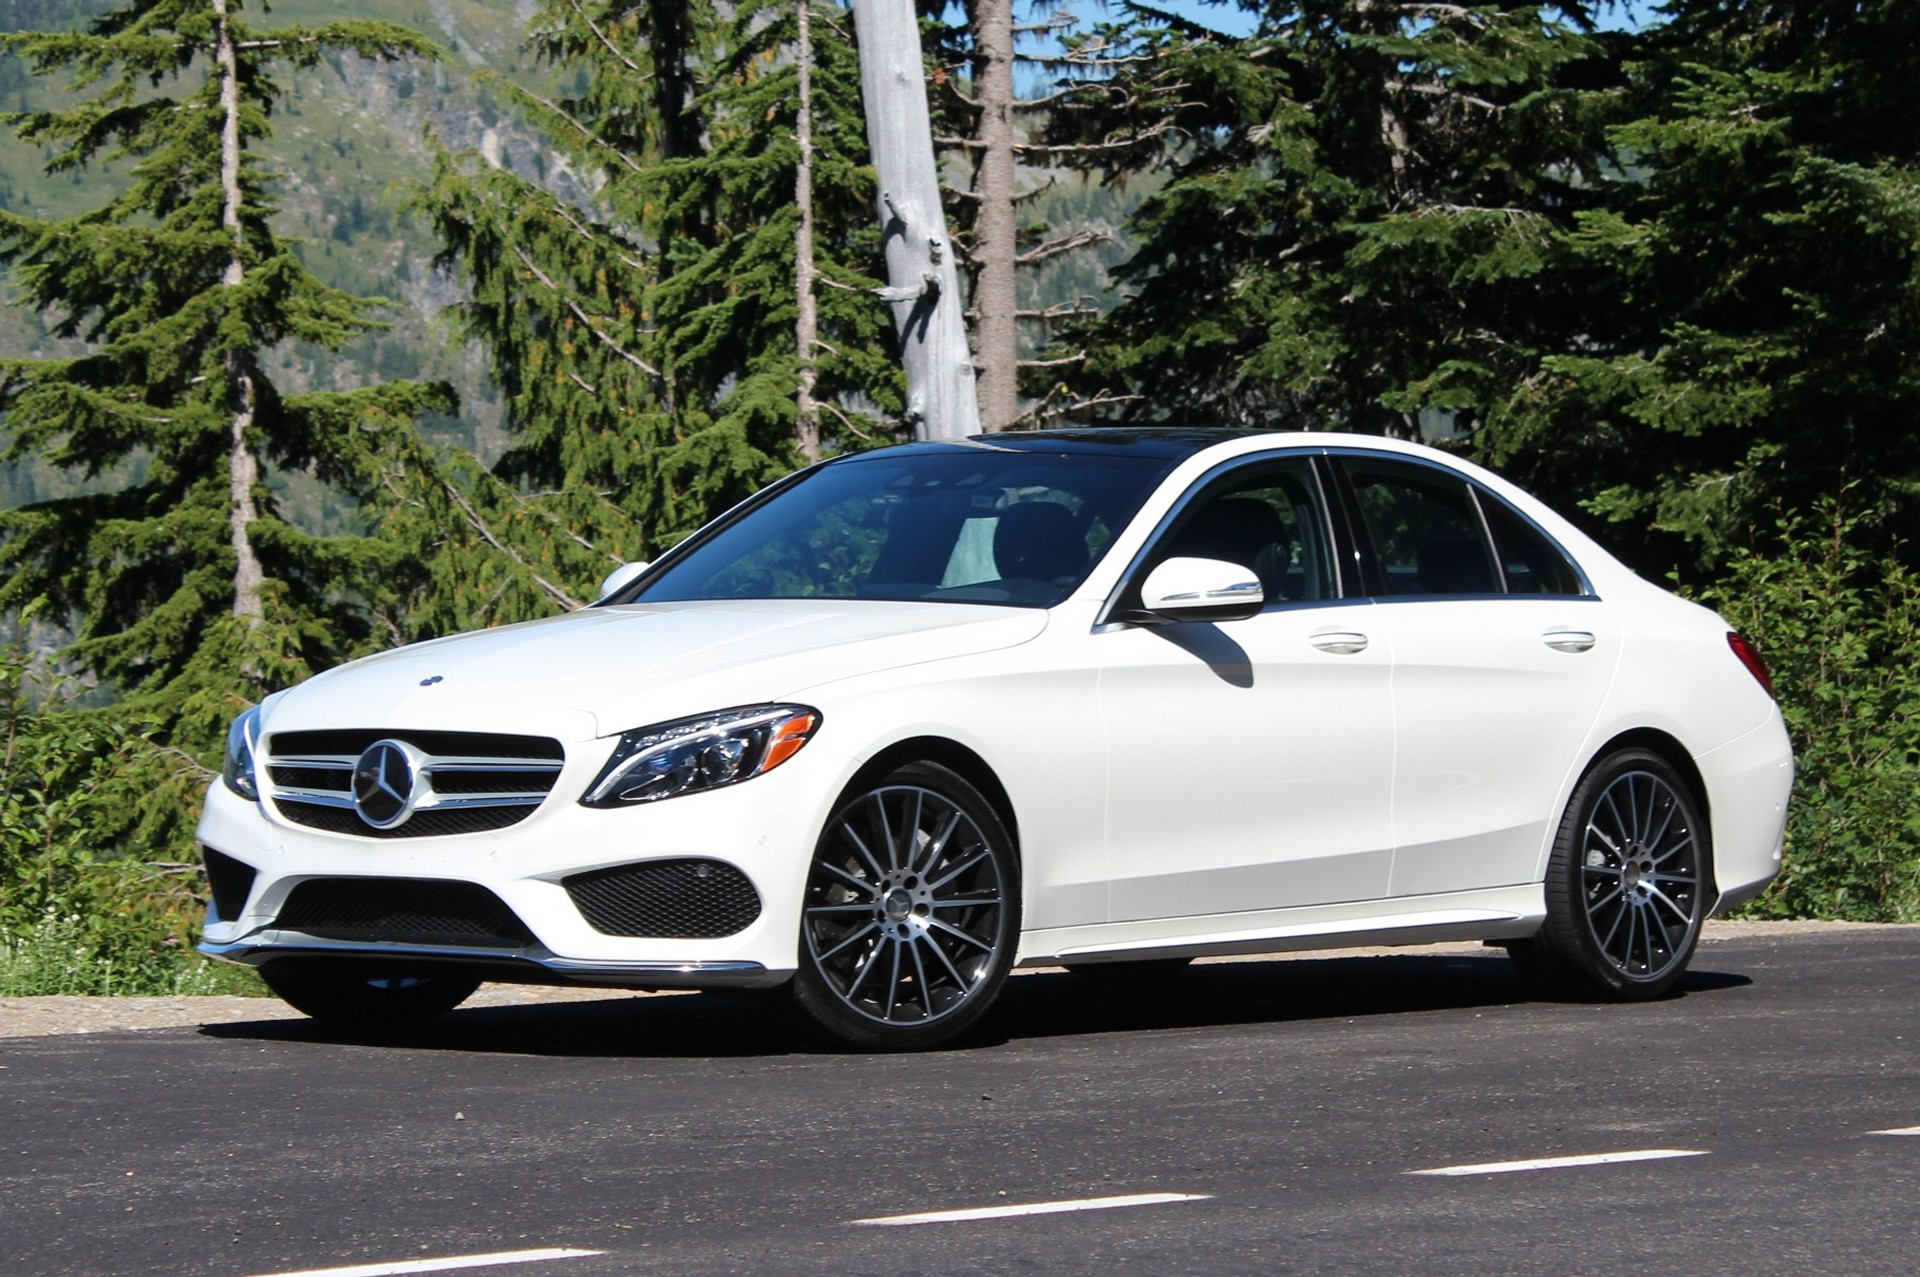 2015 mercedes benz c class review ratings specs prices for Mercedes benz 2015 c class price